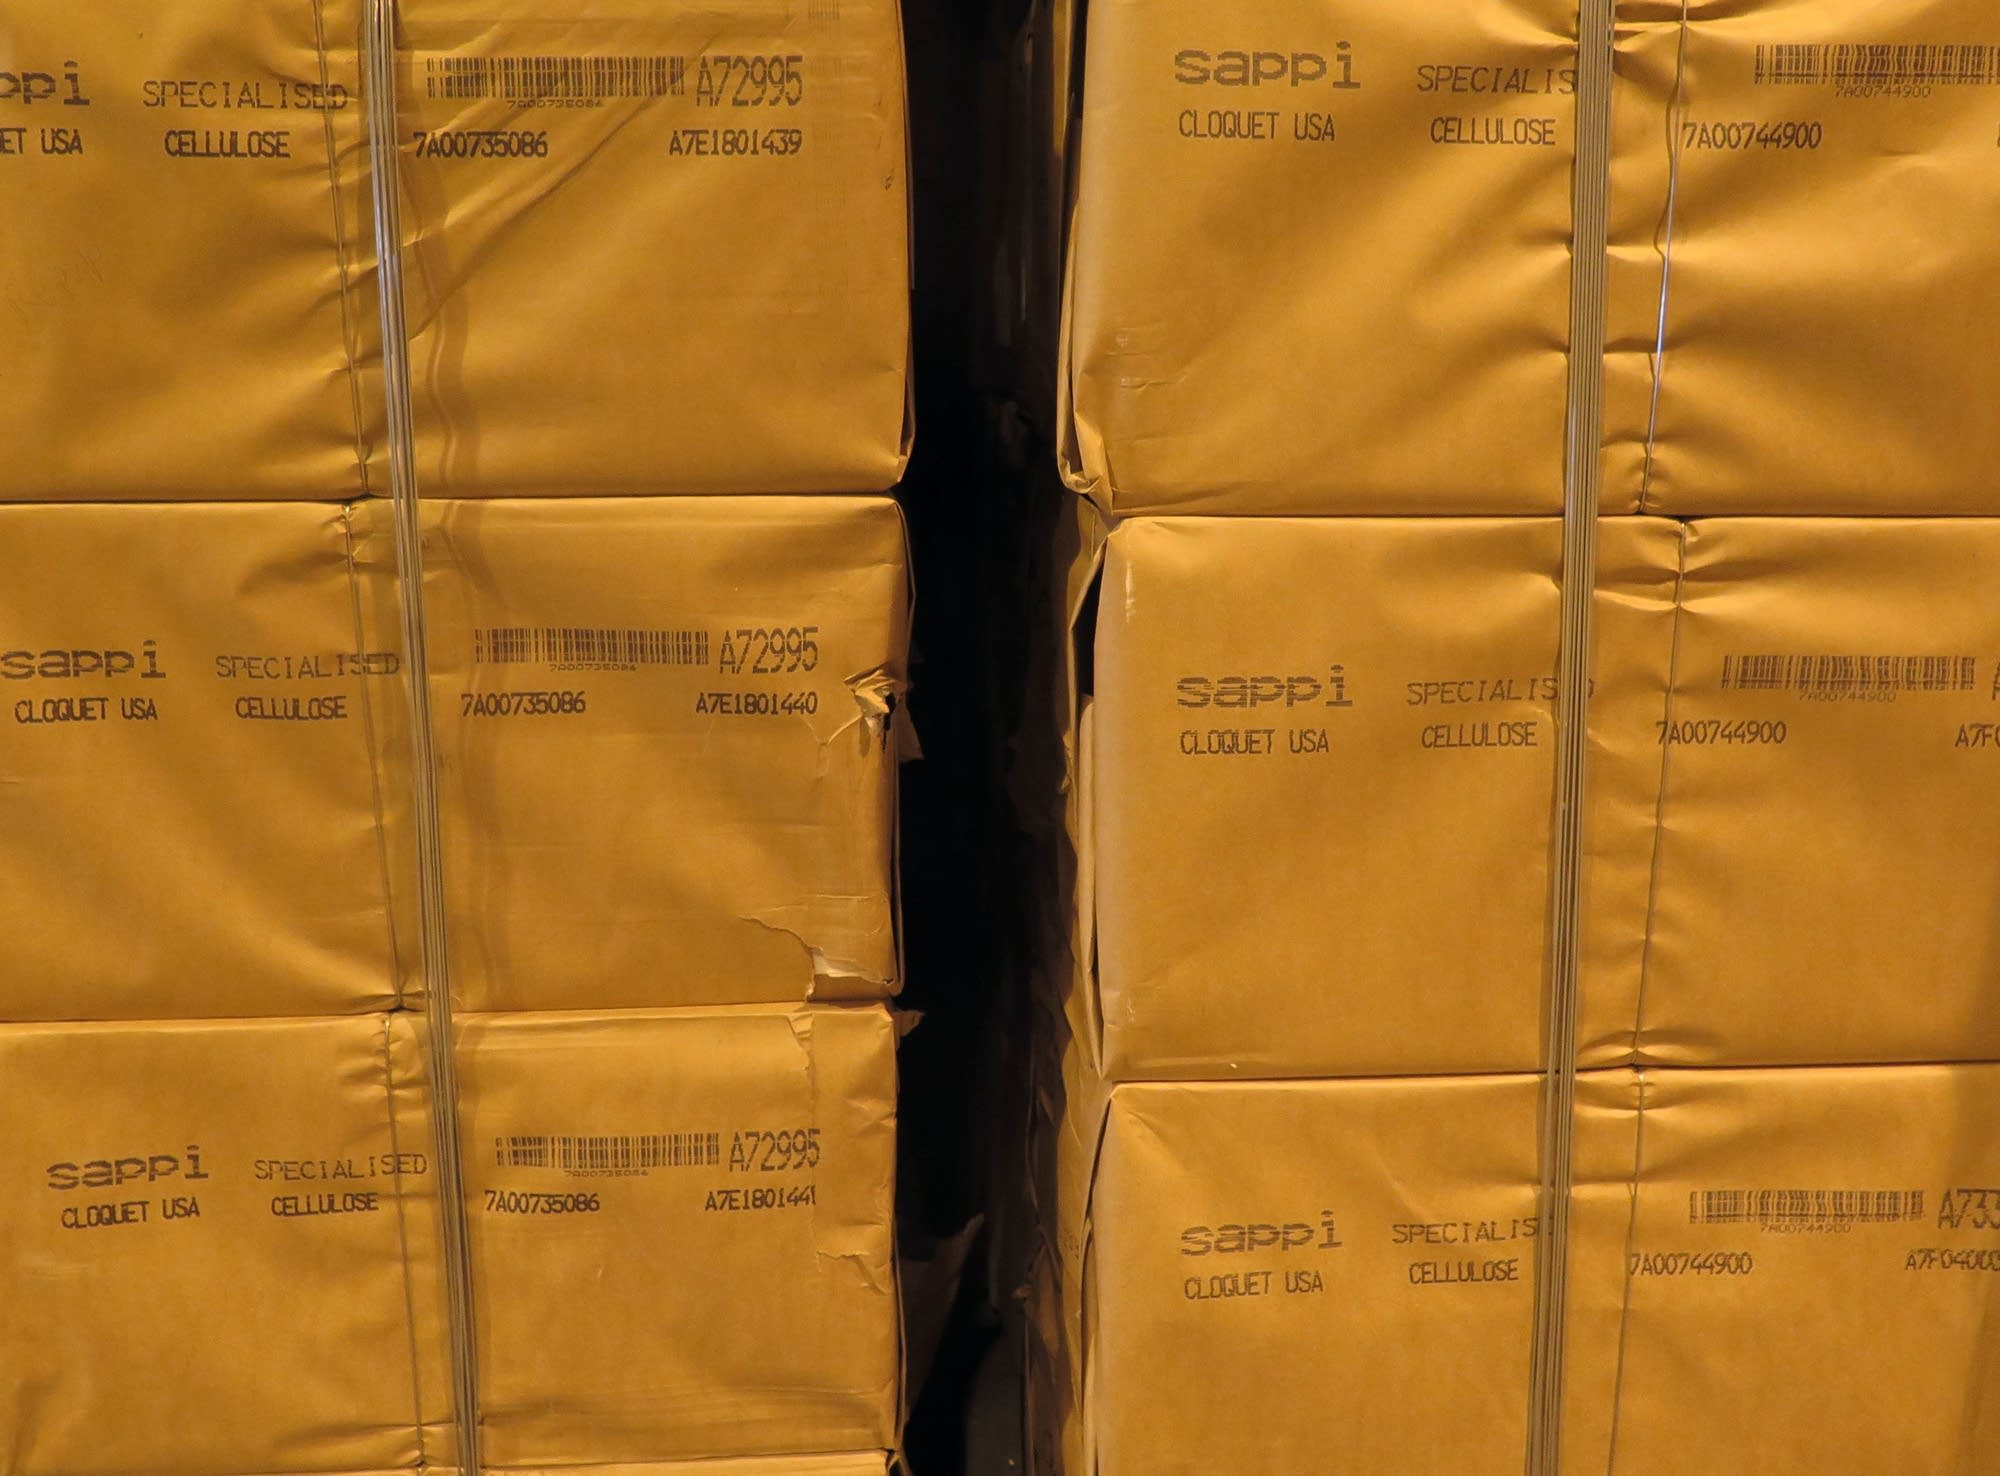 Bales of specialized cellulose wait to be shipped overseas.